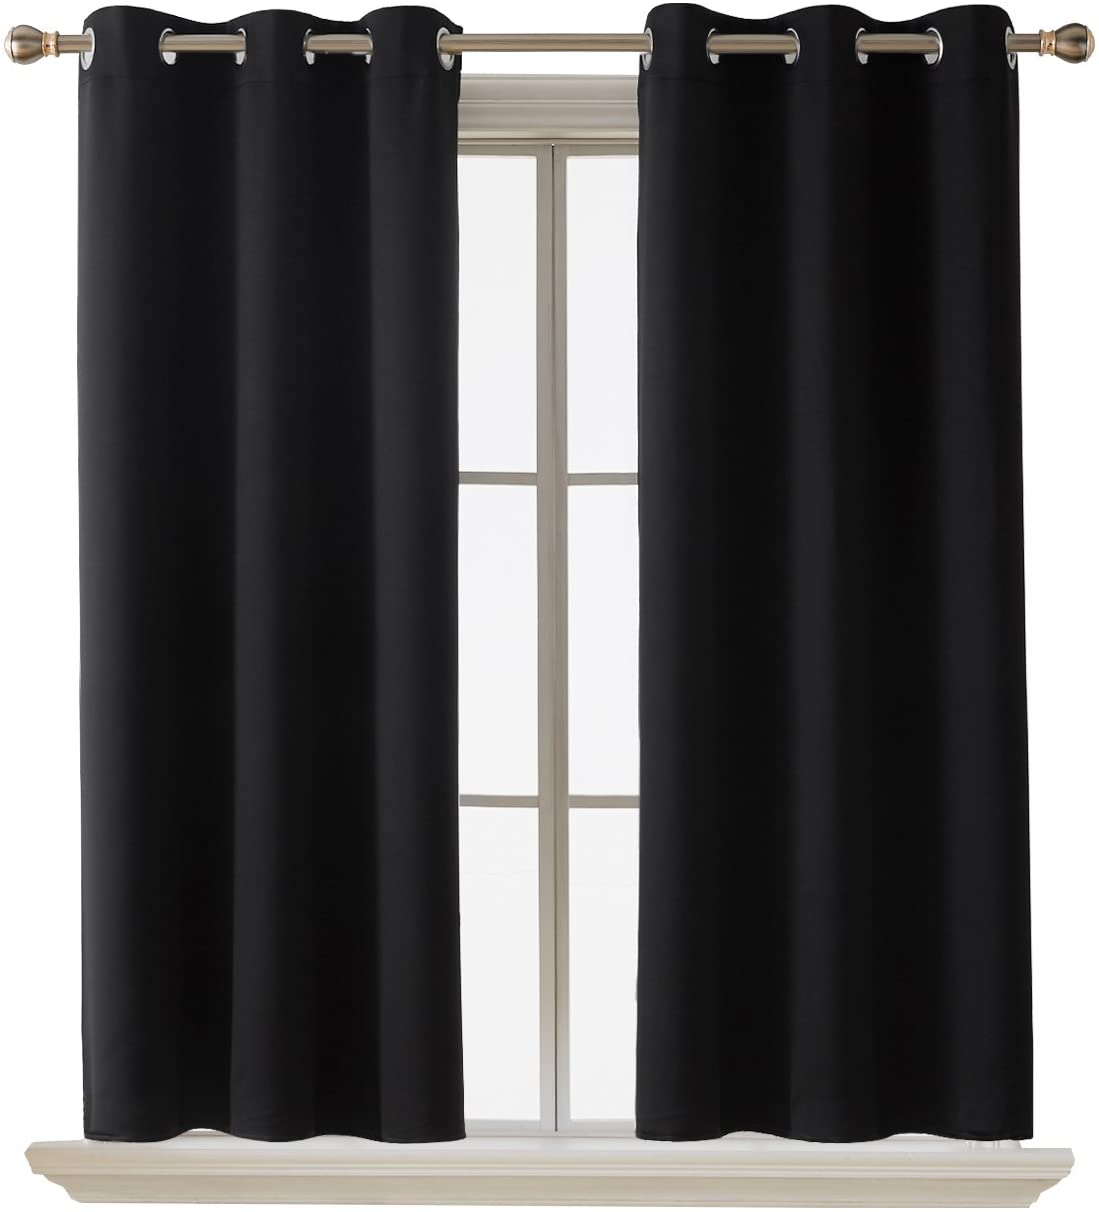 curtain models